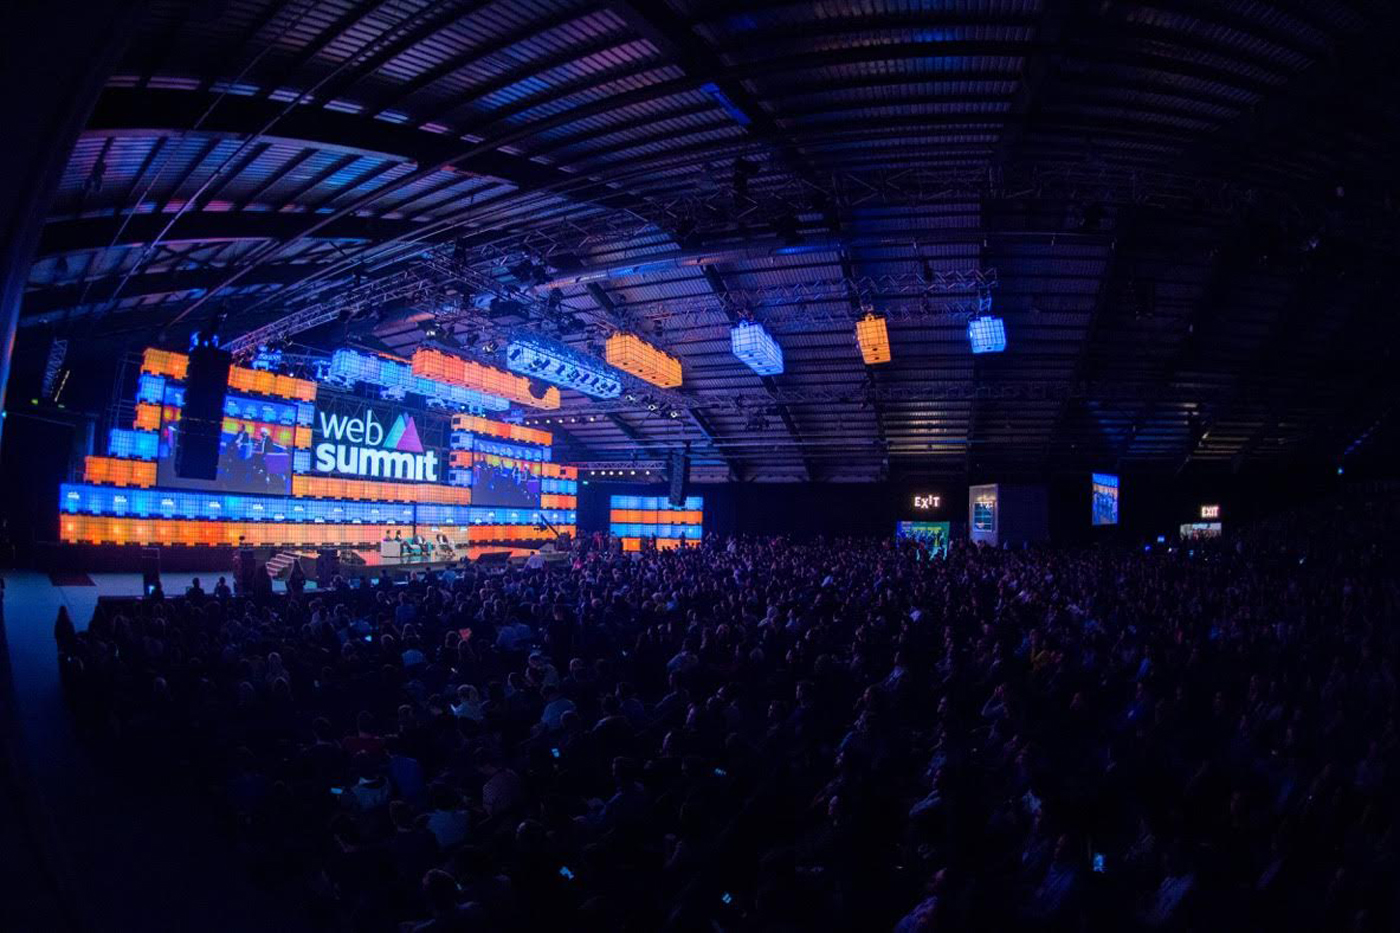 Cover image: Designing the Web Summit